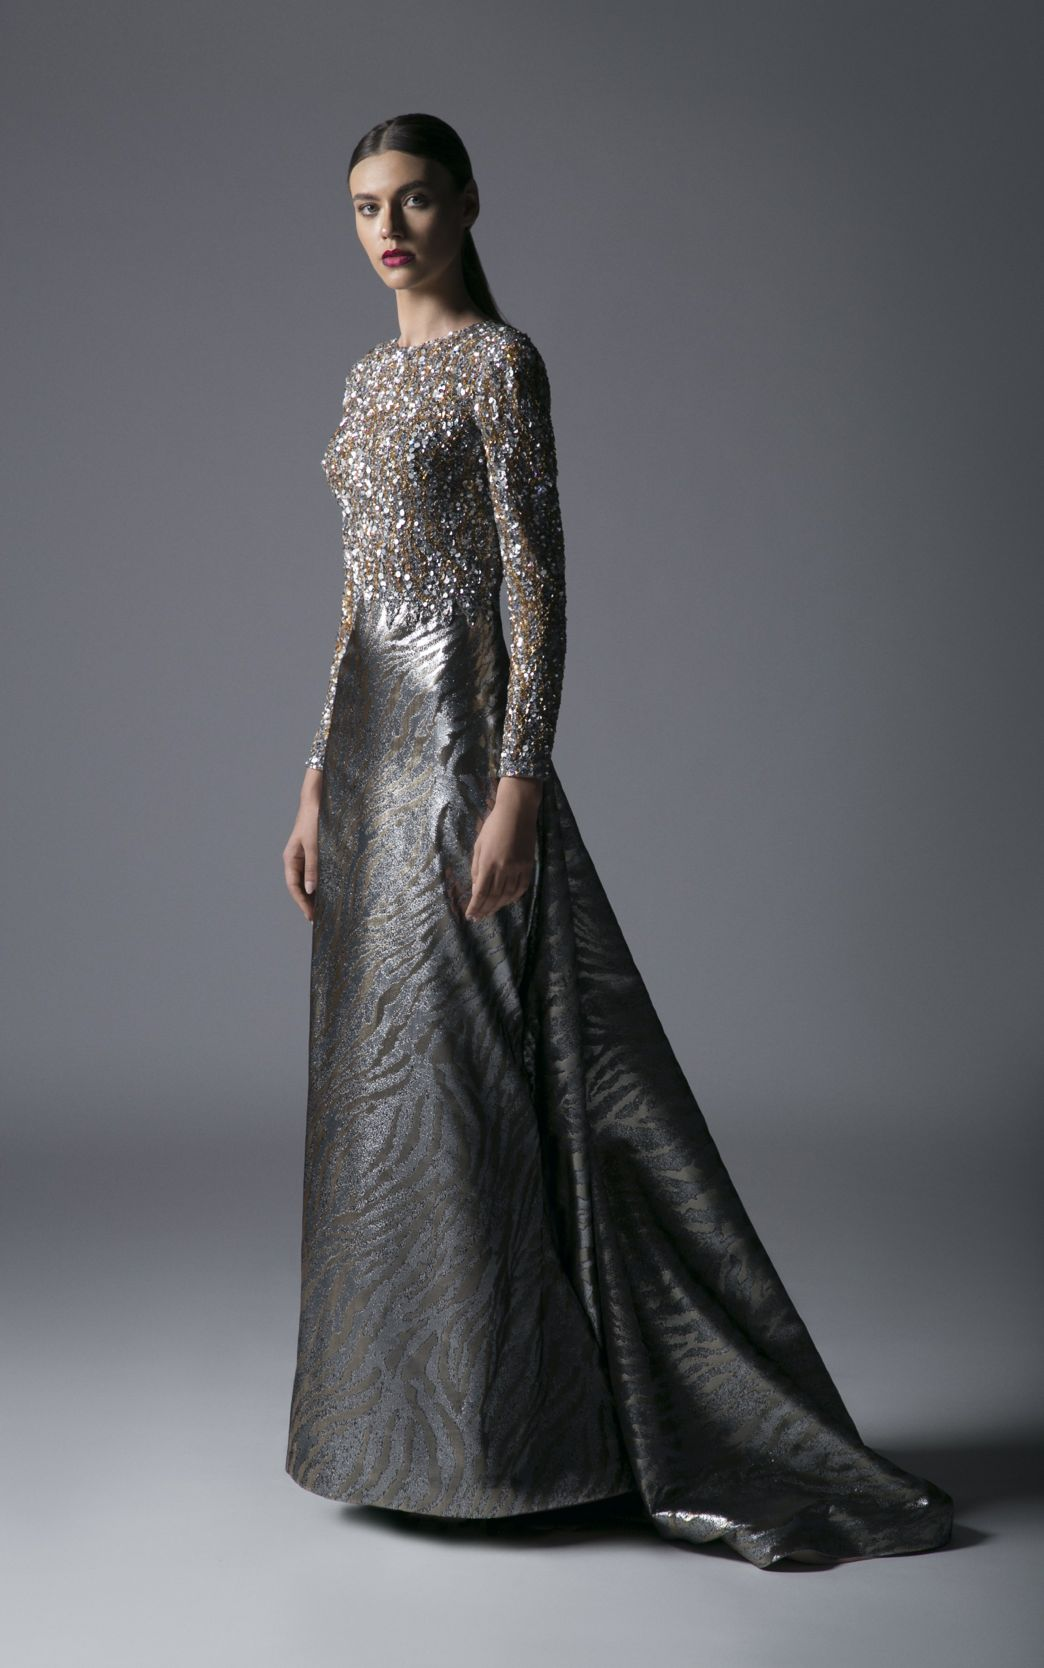 JEWELED MOIRÉ GOWN